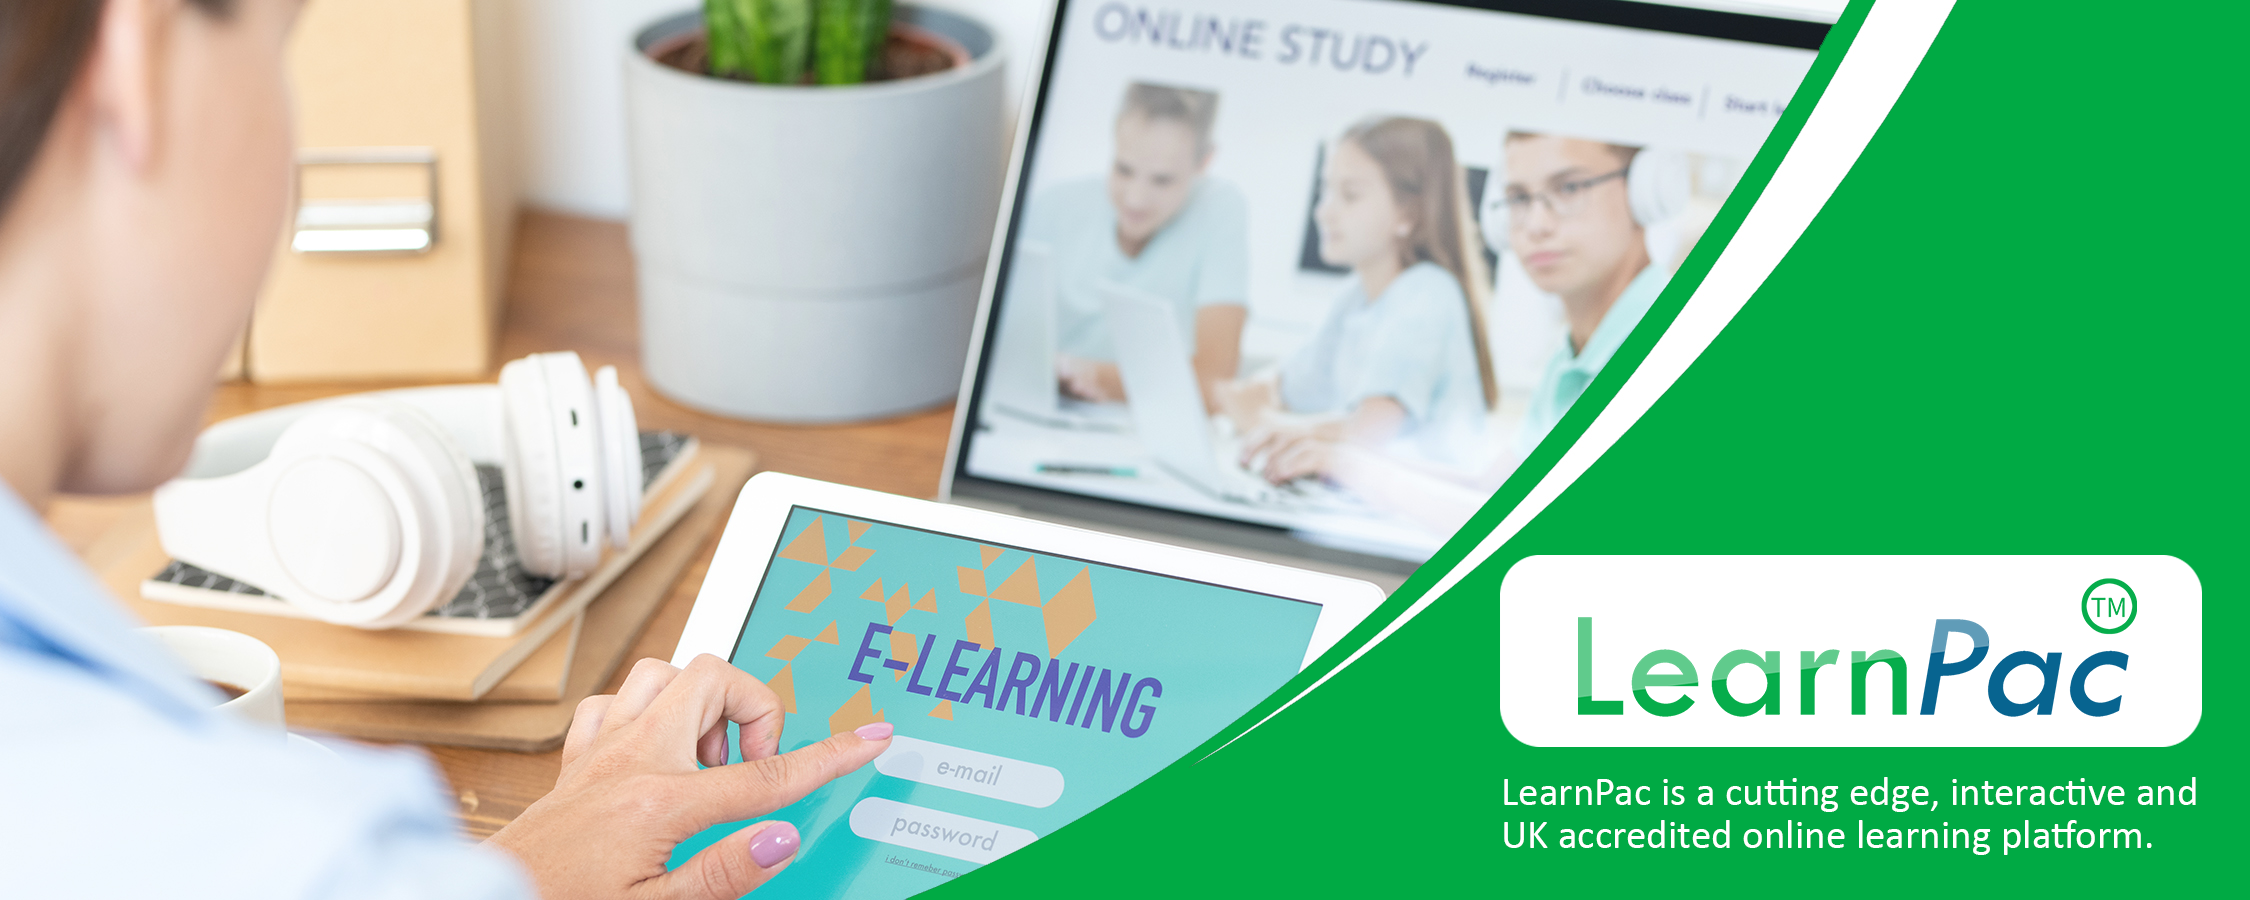 COSHH Awareness- Online Learning Courses - E-Learning Courses - LearnPac Systems UK -